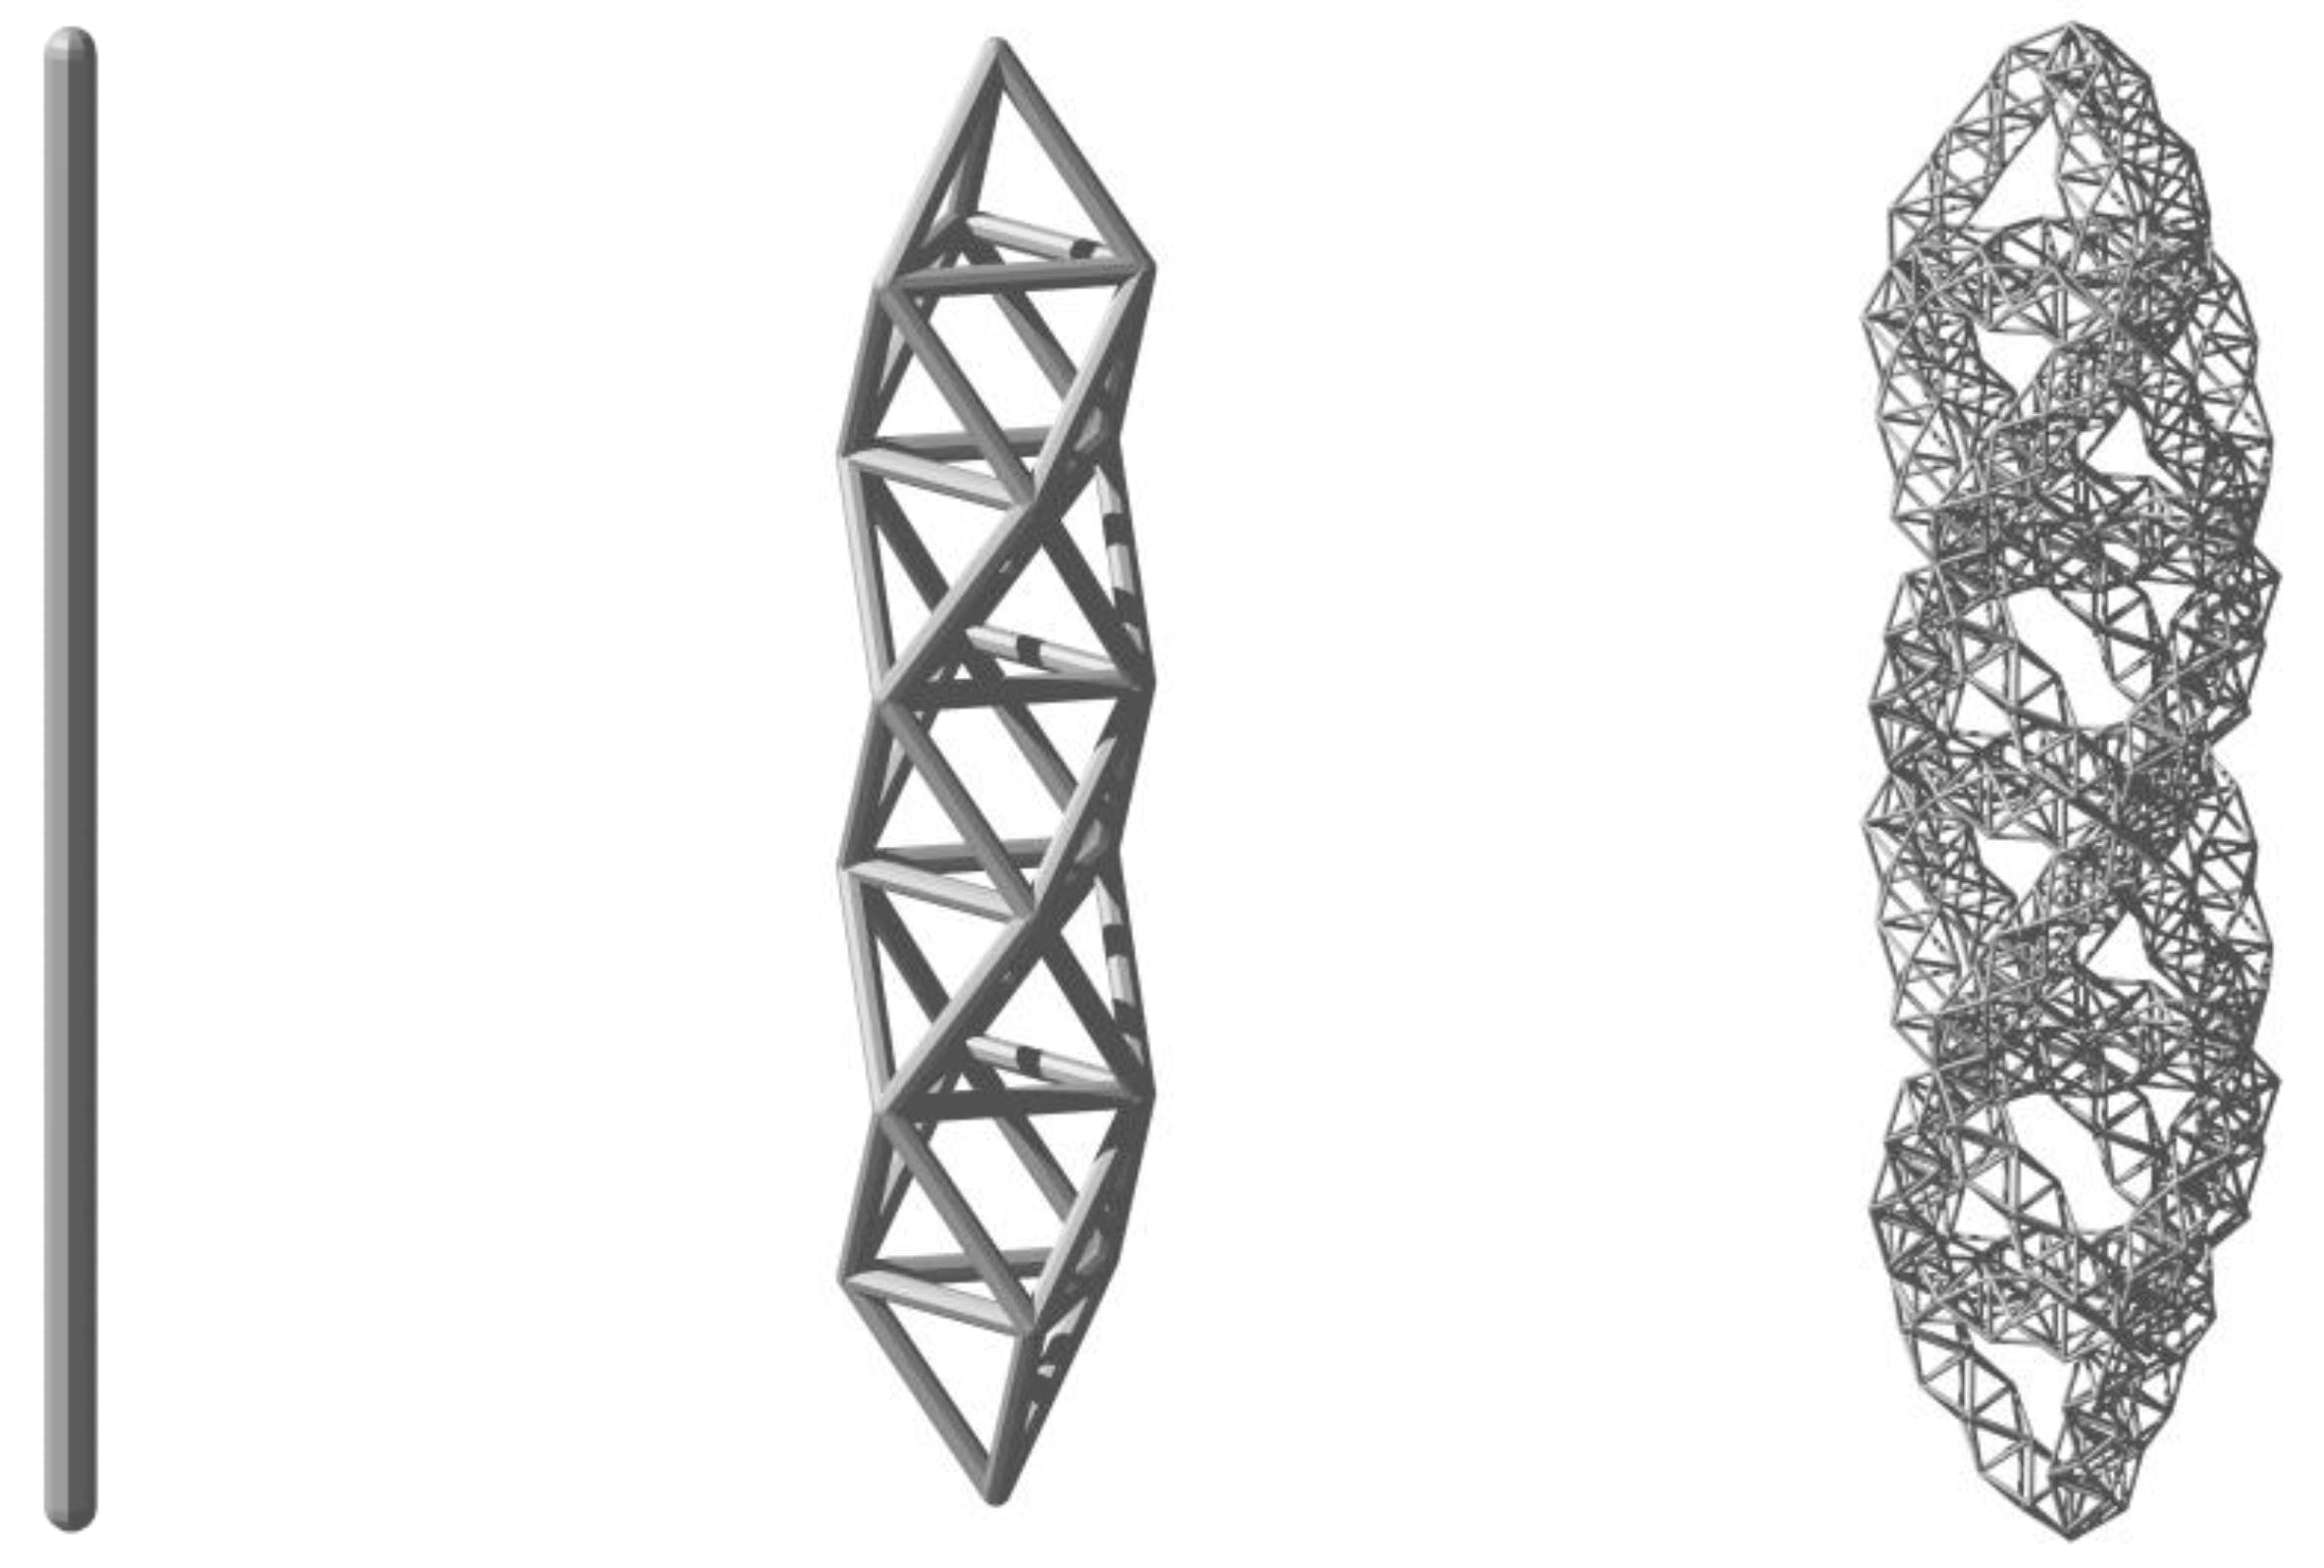 We show that self-similar fractal structures exhibit new strength-to-mass scaling relations, offering unprecedented mechanical efficiency.